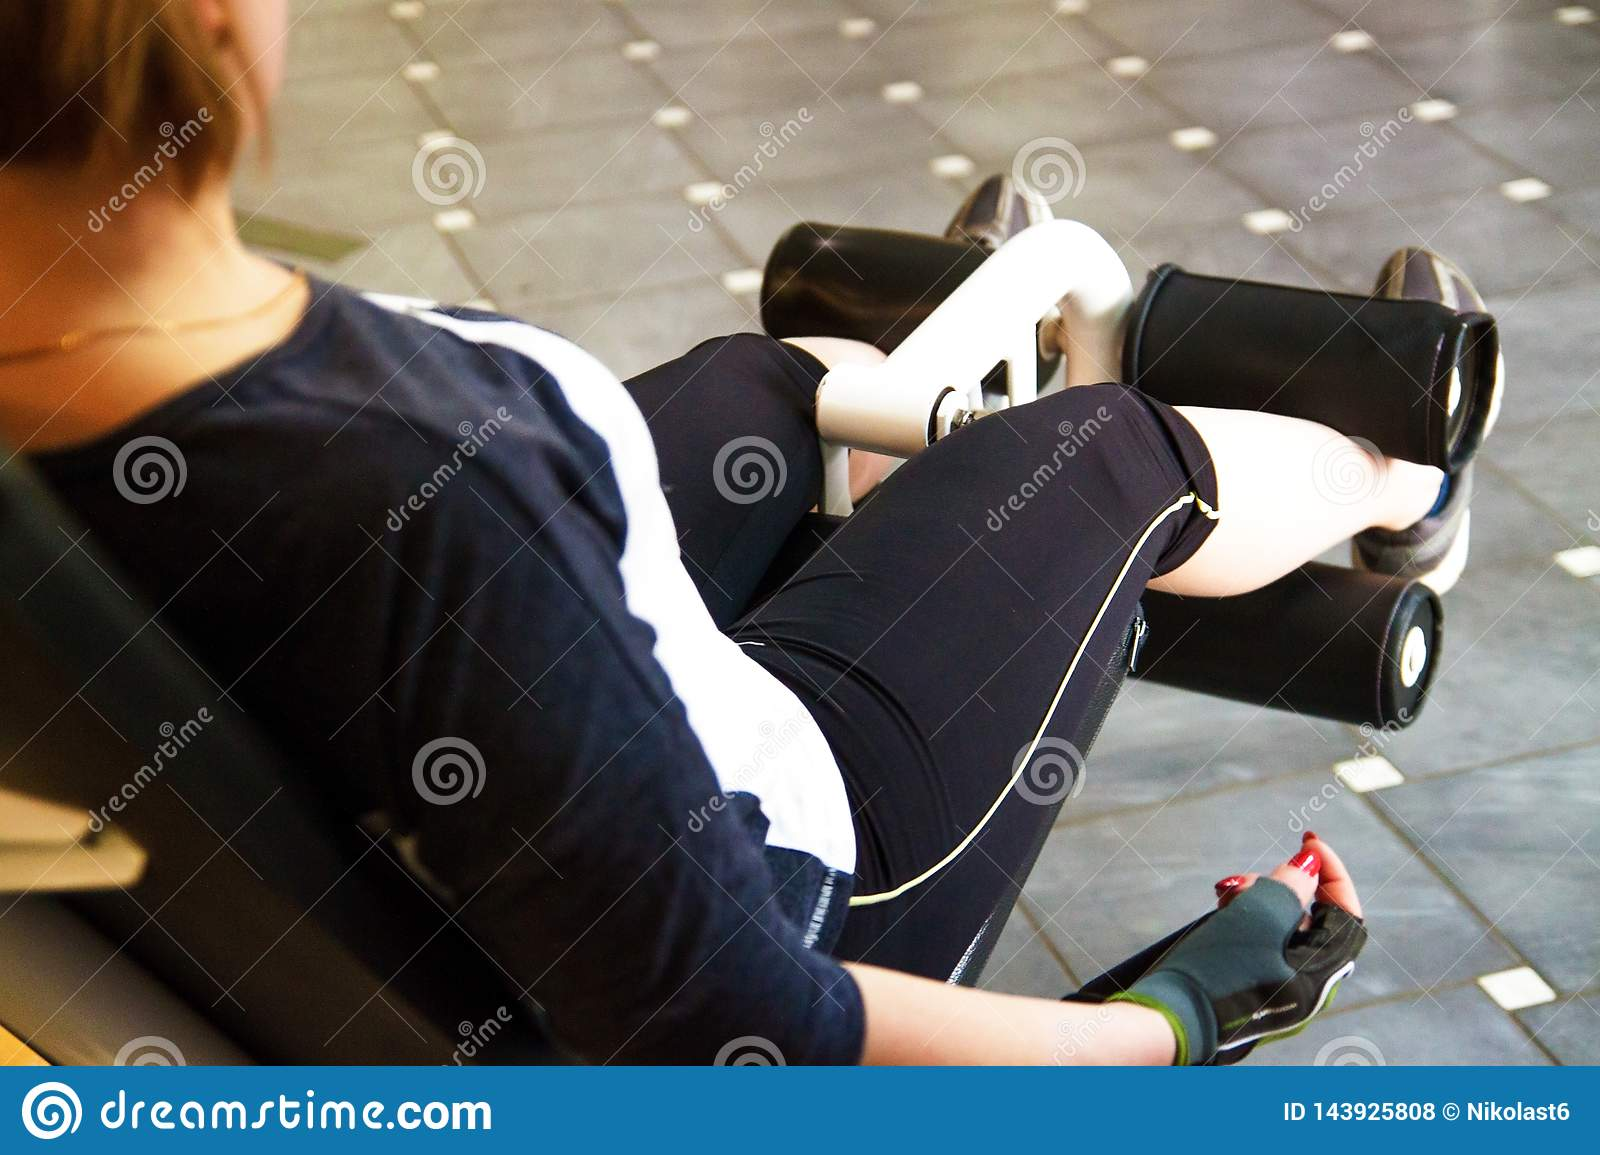 Calories burning, obese female person in sport club, fat-burning.